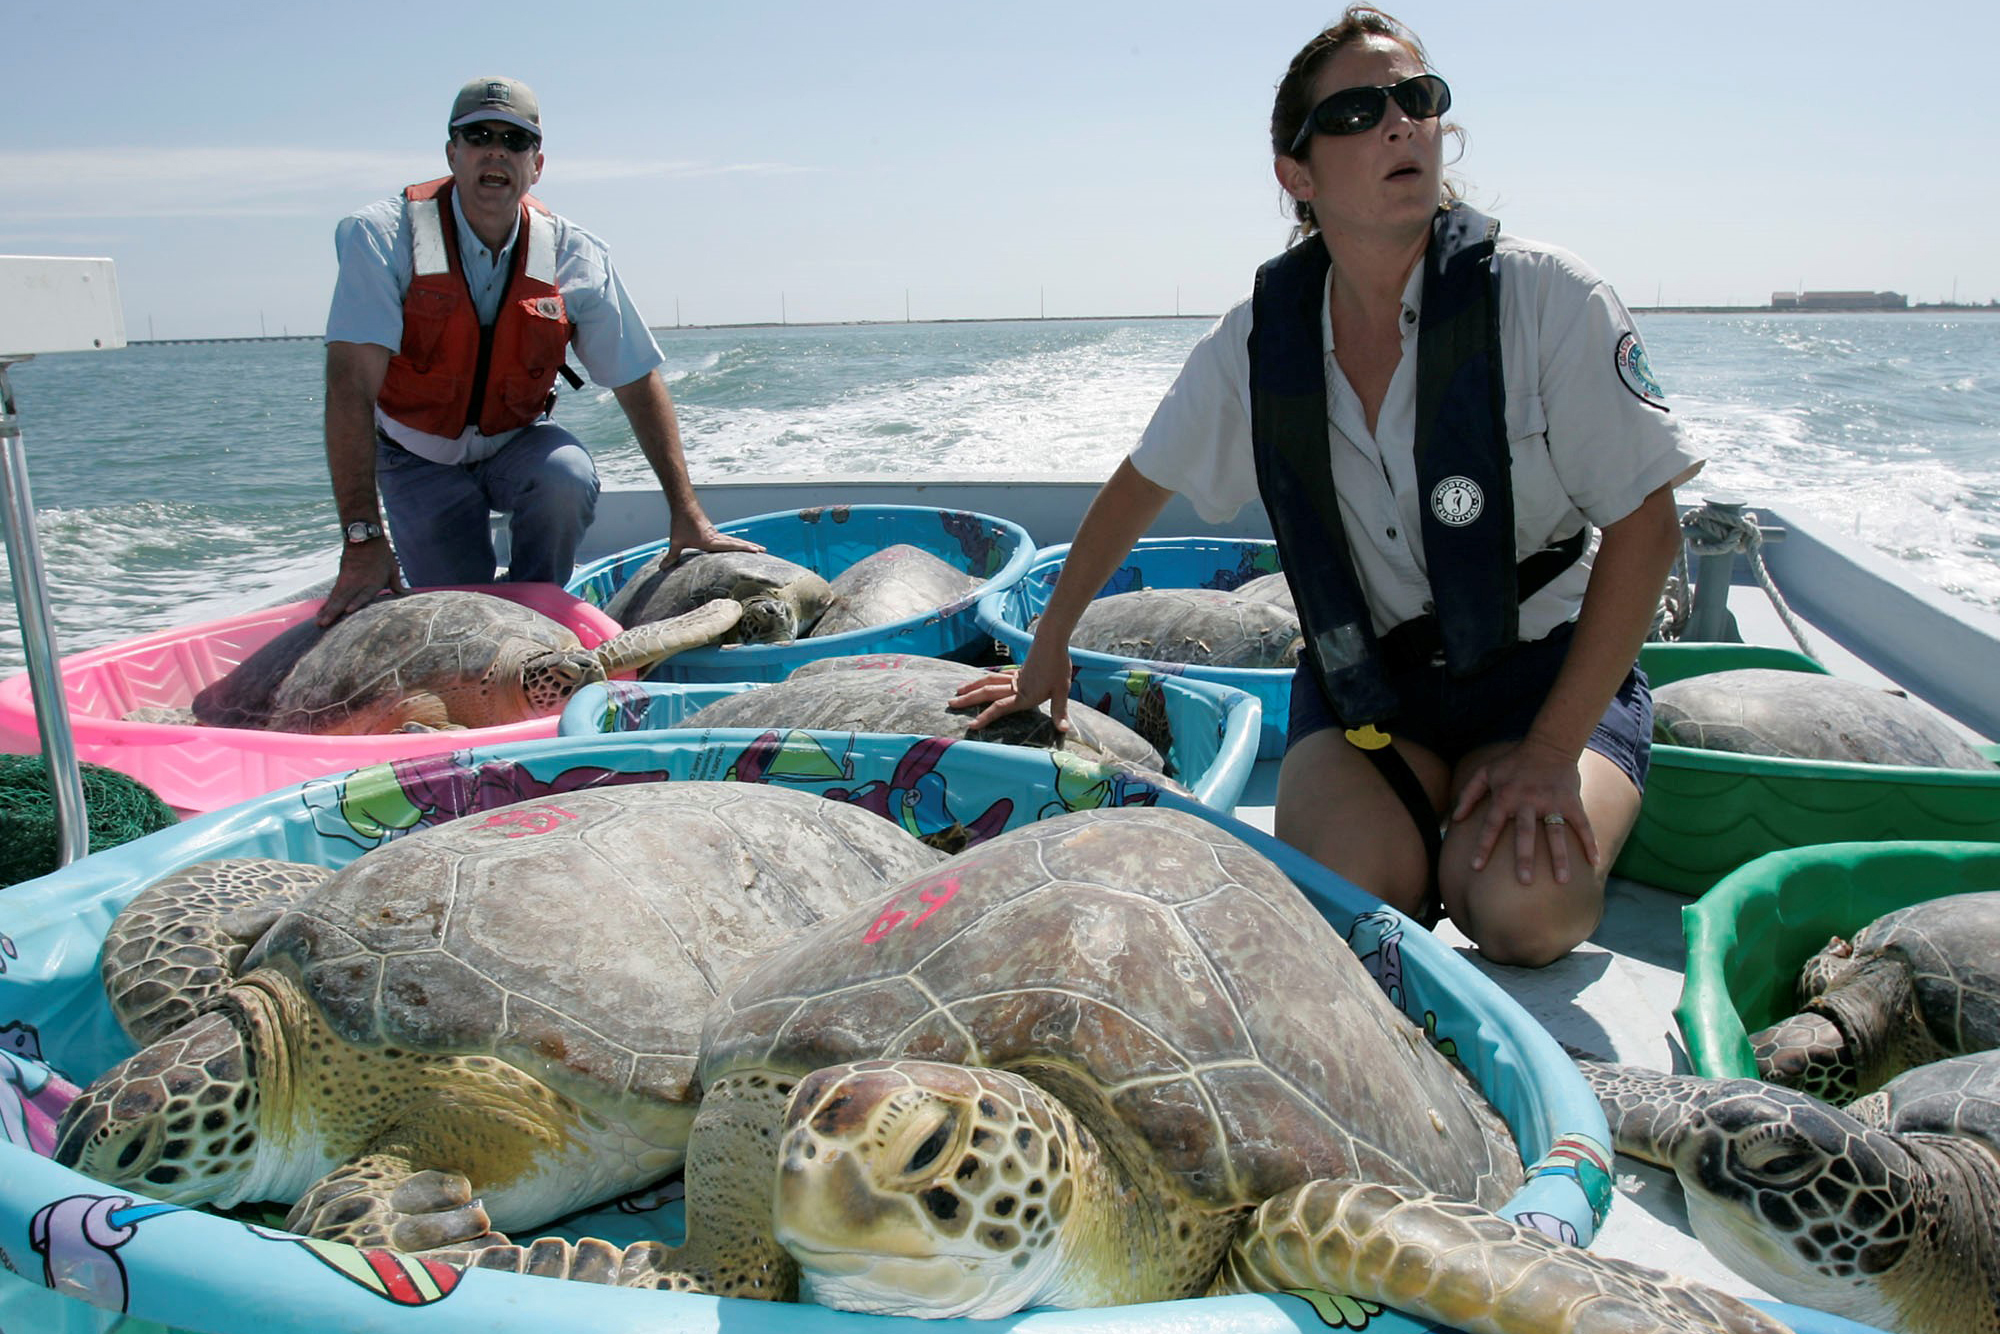 Scientists transport rehabilitated sea turtles to release them in the water.